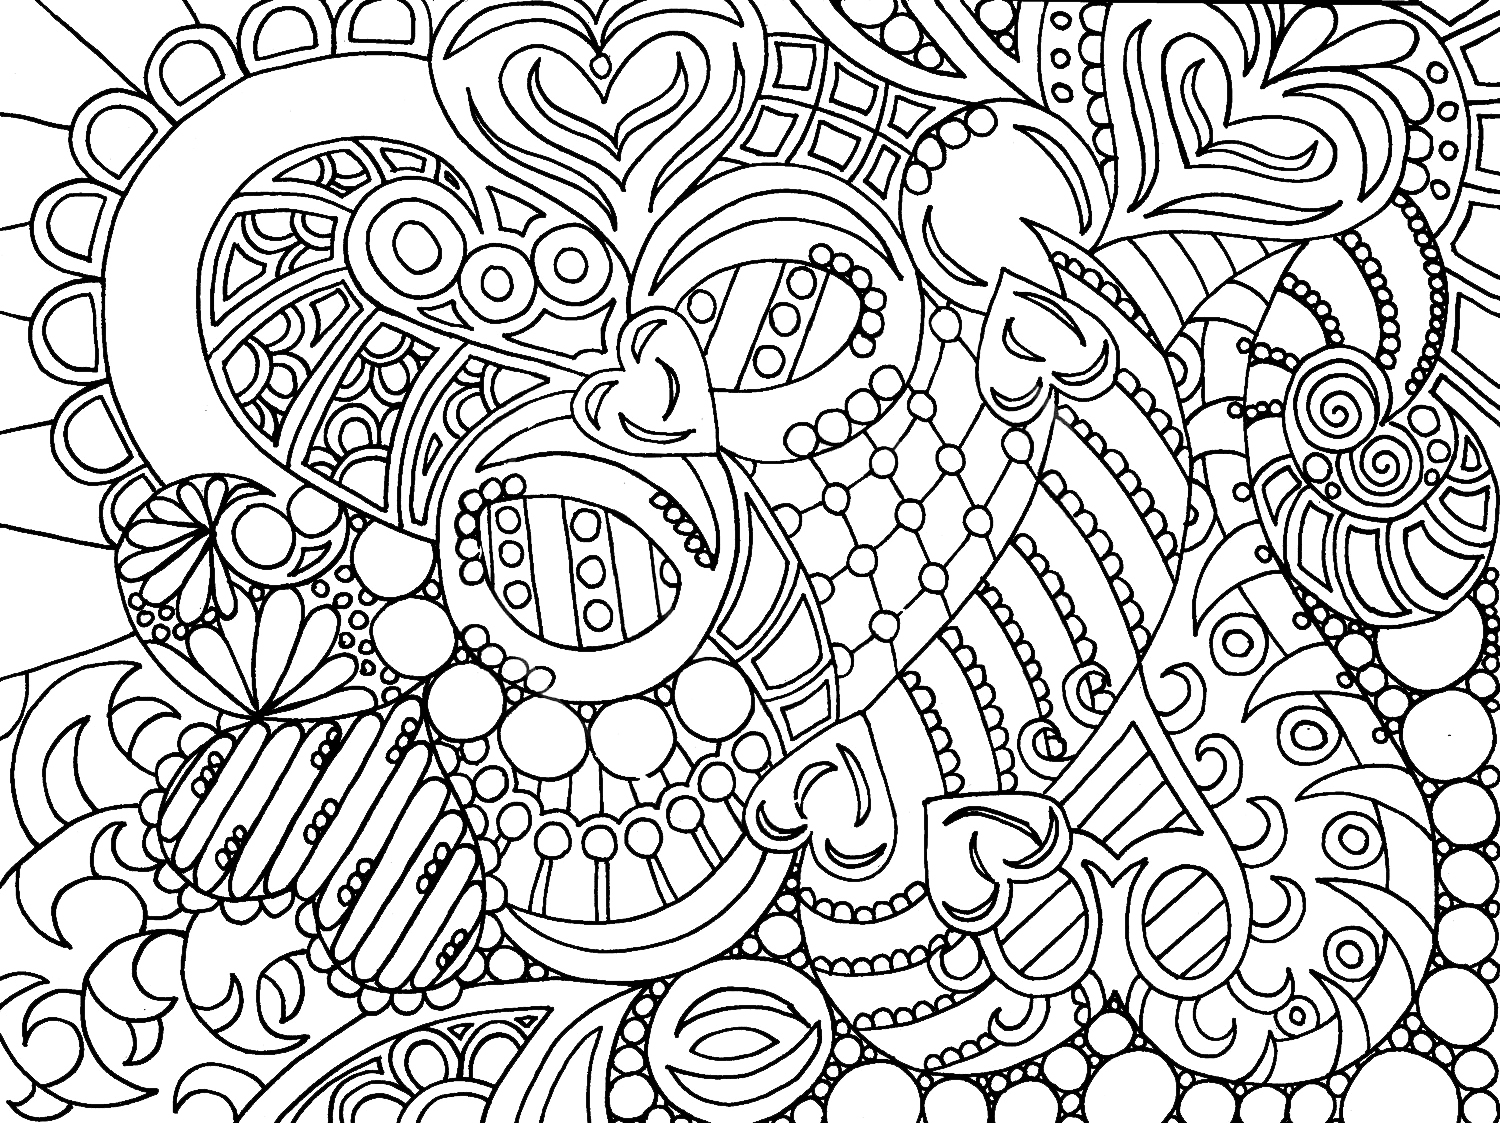 Free coloring pages for adults only coloring pages for Coloring book pages free